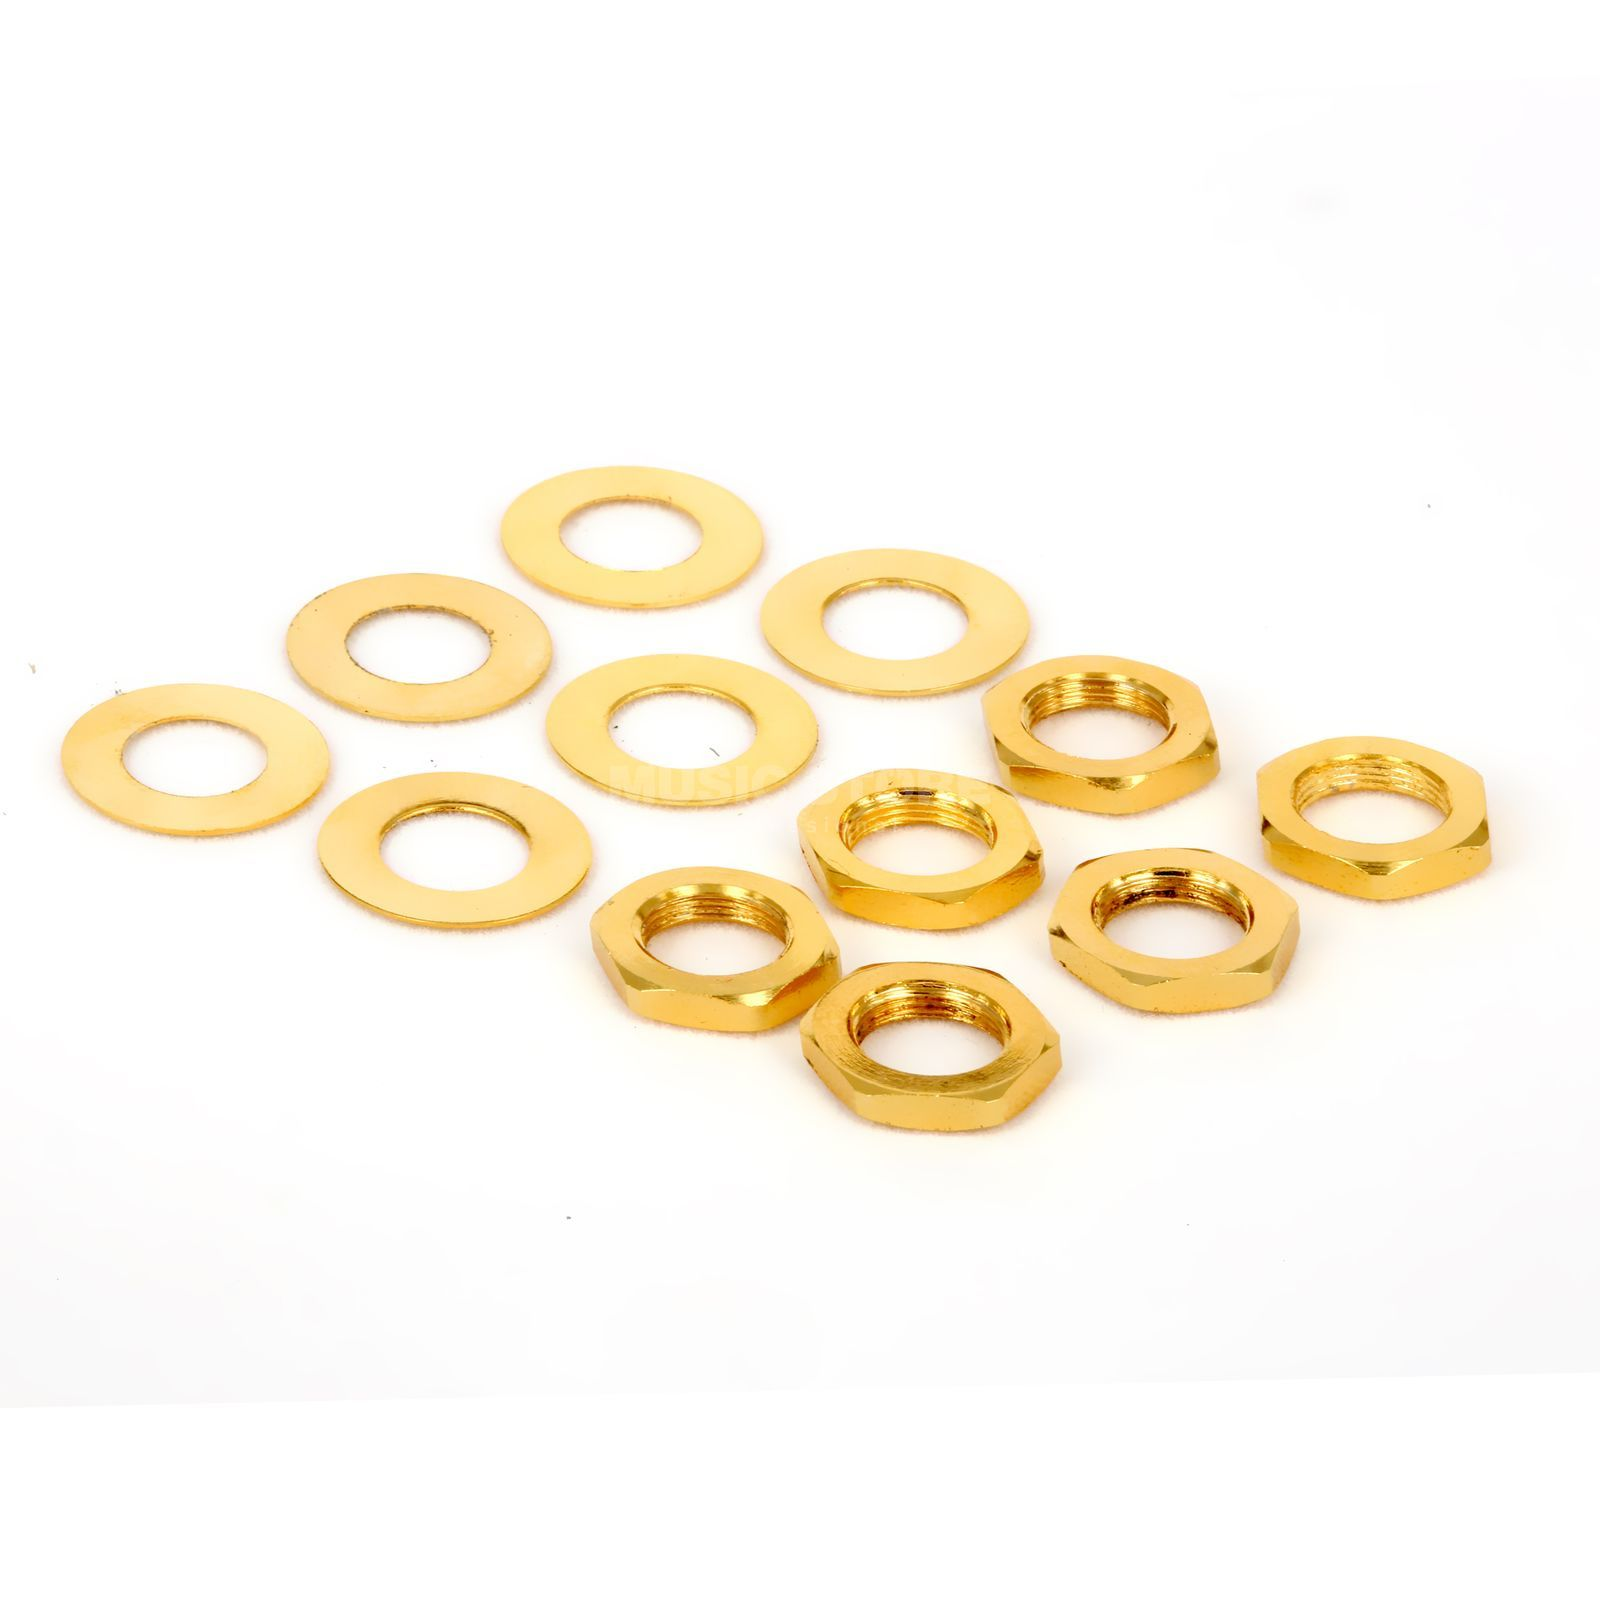 Tronical Hex Nut & Washer Gold Produktbild